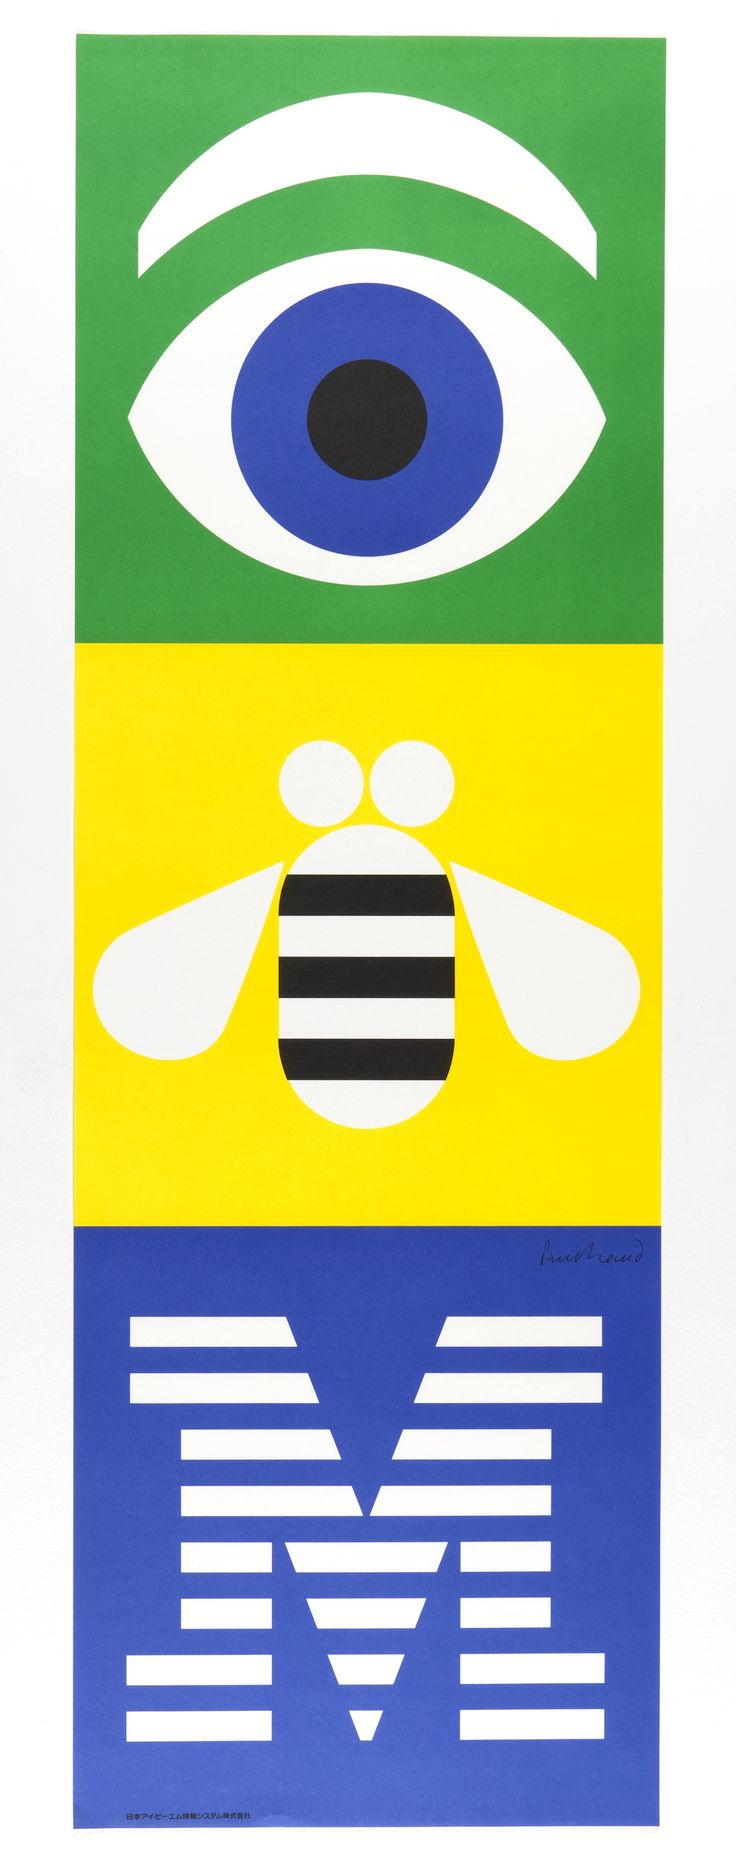 Eye, Bee, M | Paul Rand